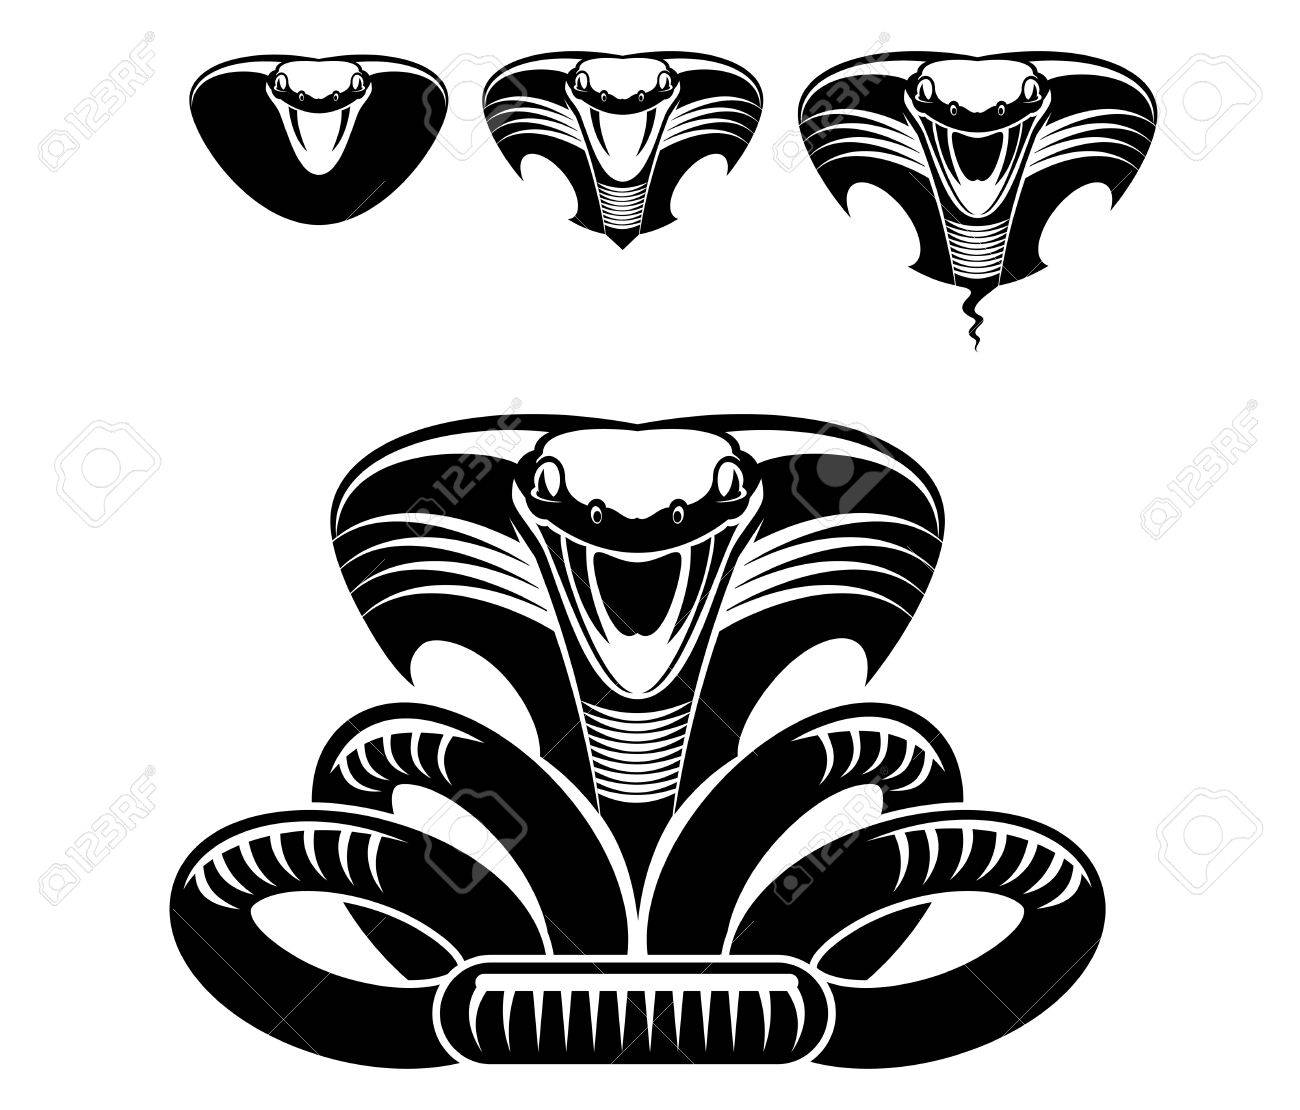 Isolated snakes as a sign or mascot Stock Vector - 5324352